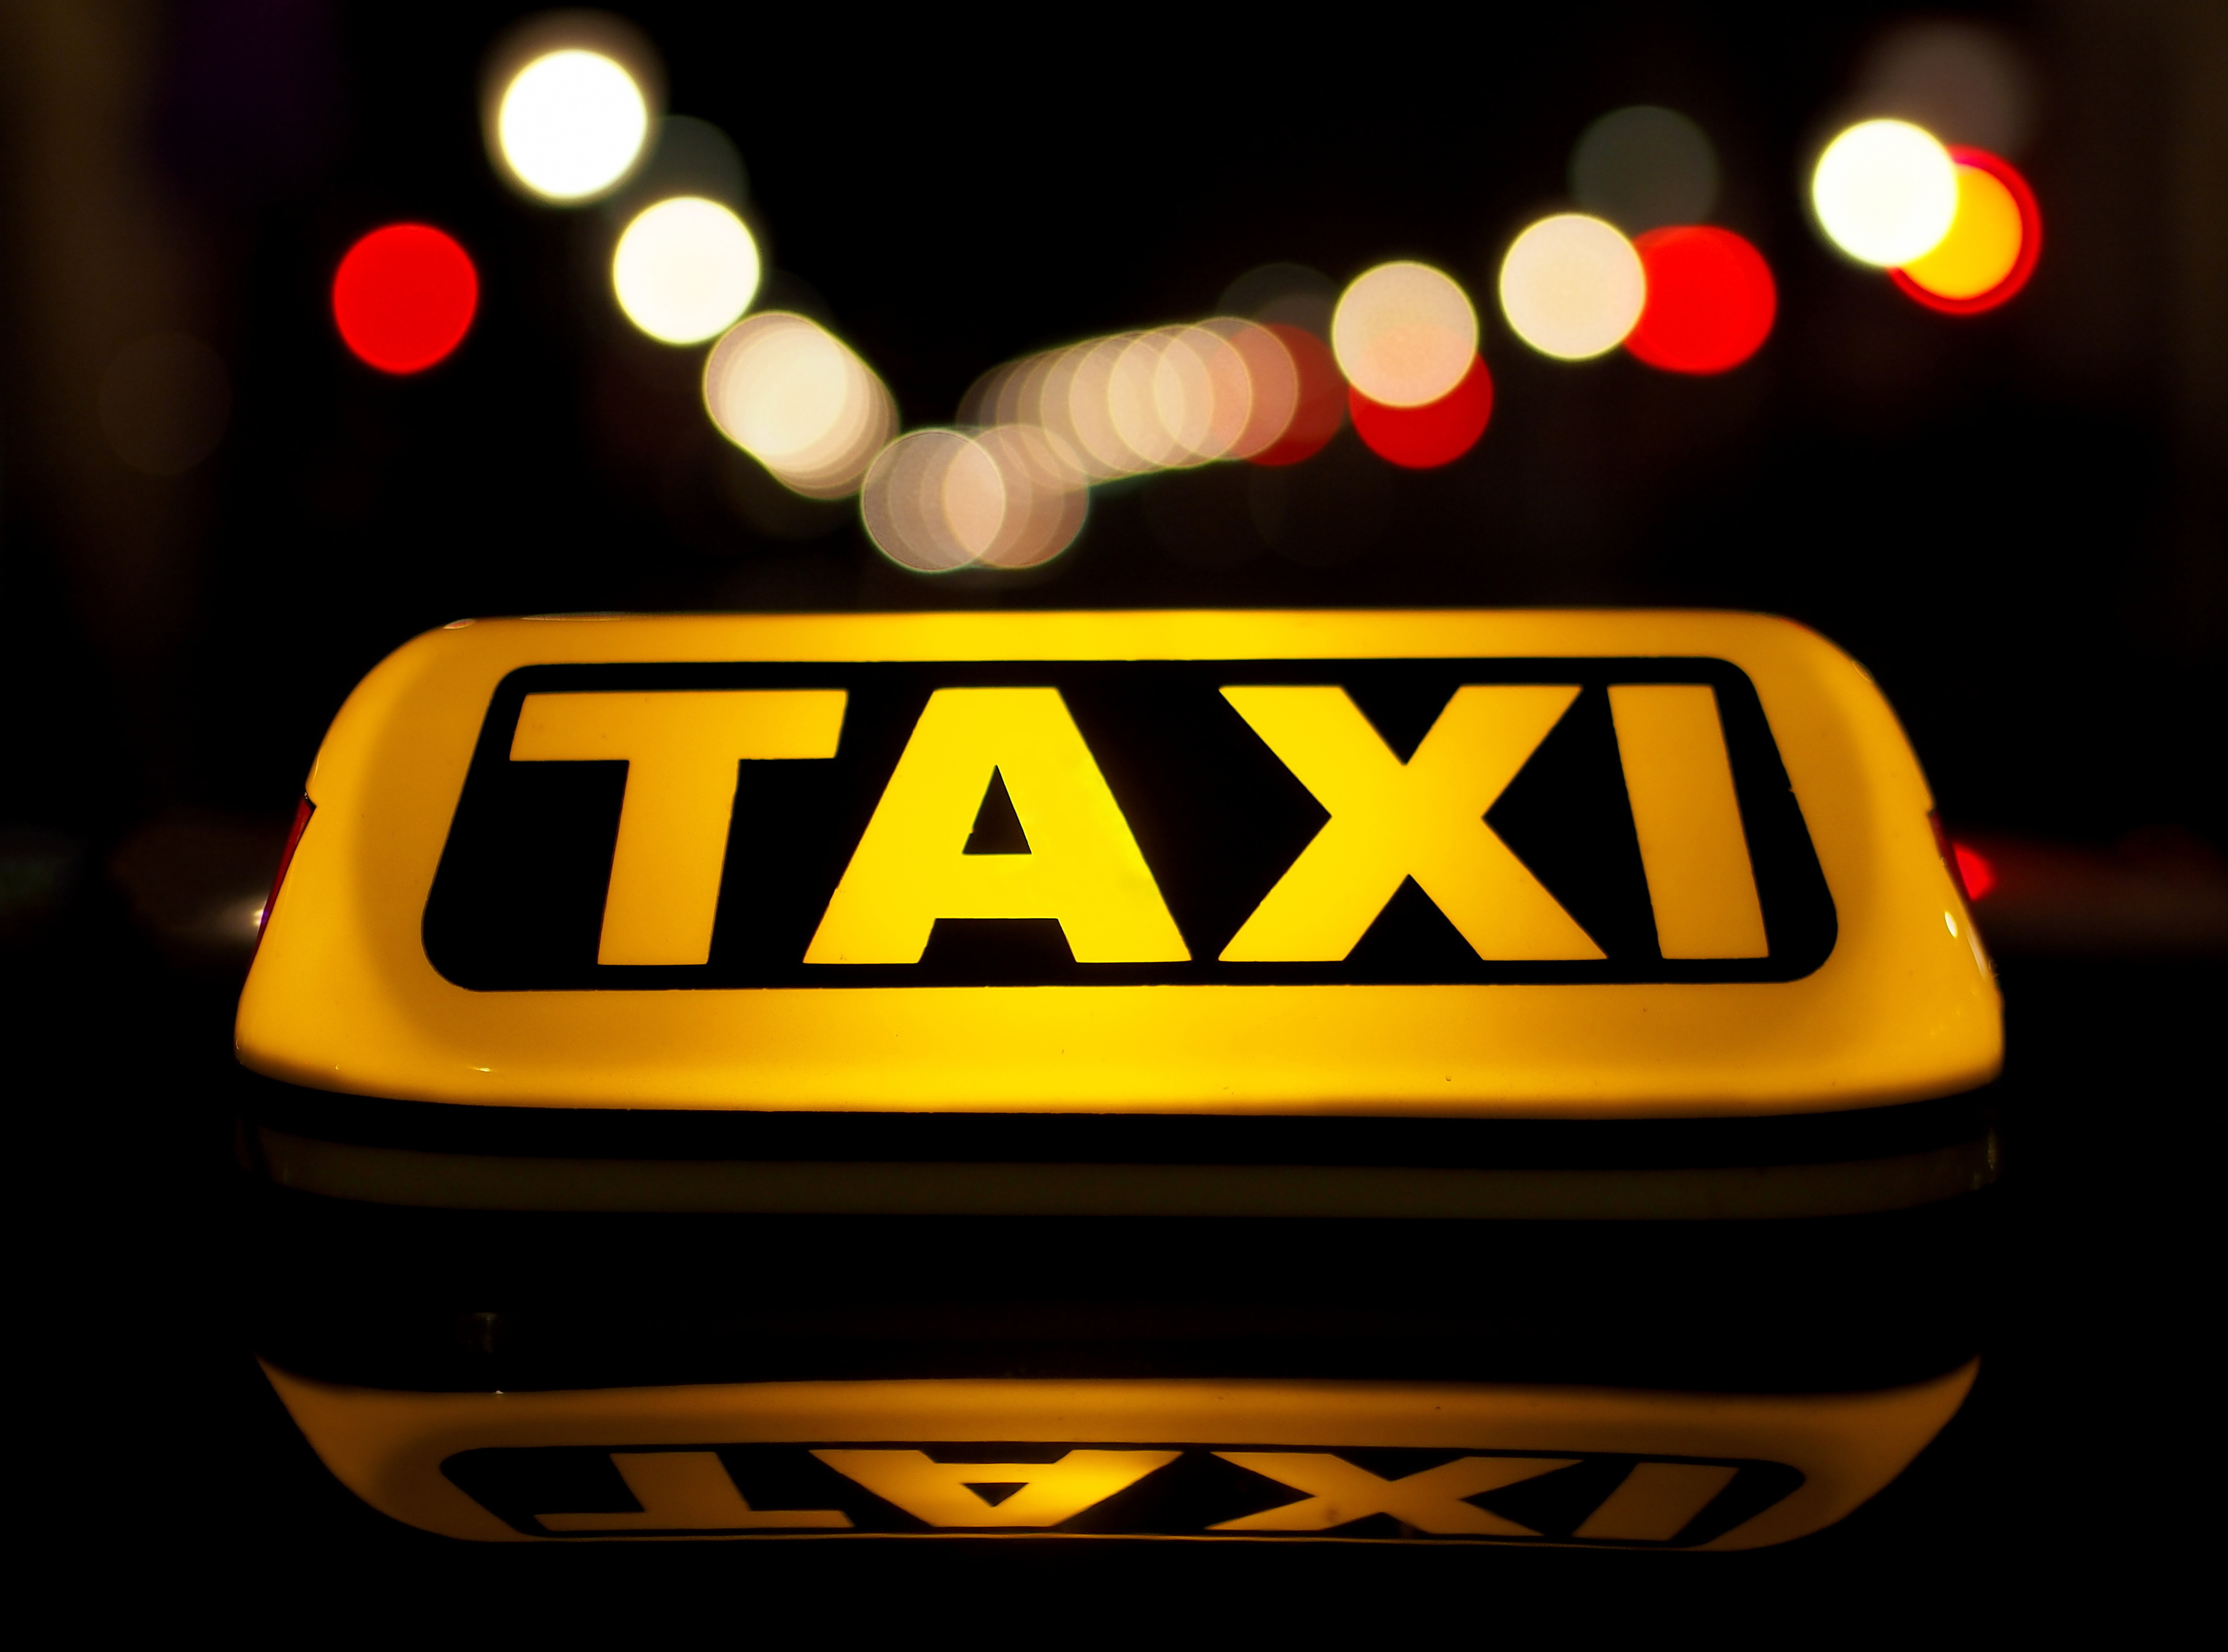 Taxi Hire In Bourne, Bourne Taxi Companies